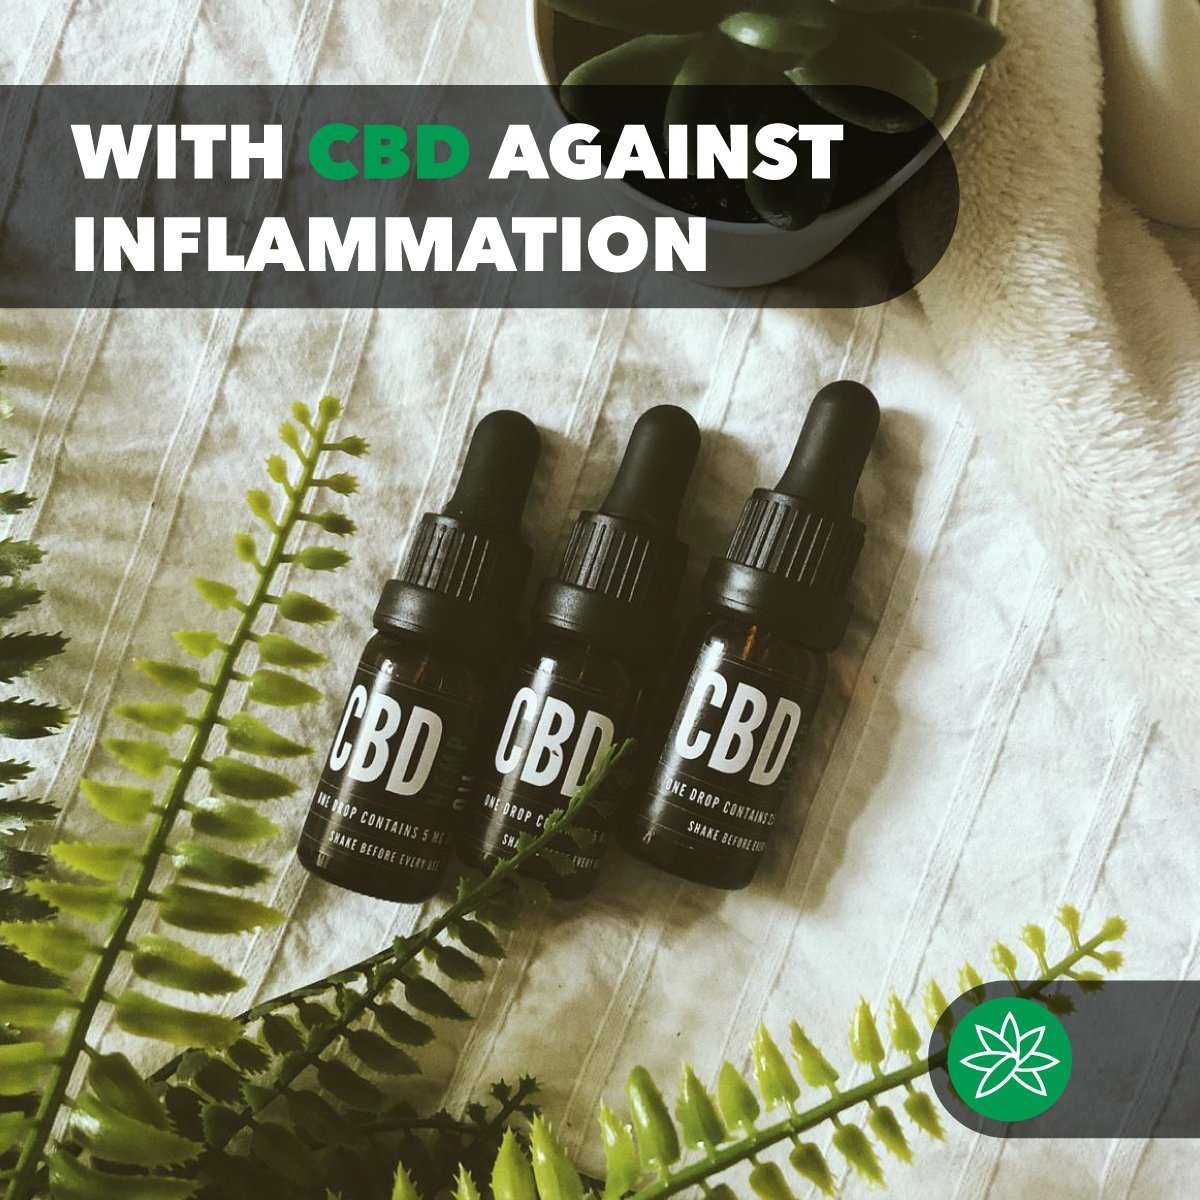 With CBD against inflammation